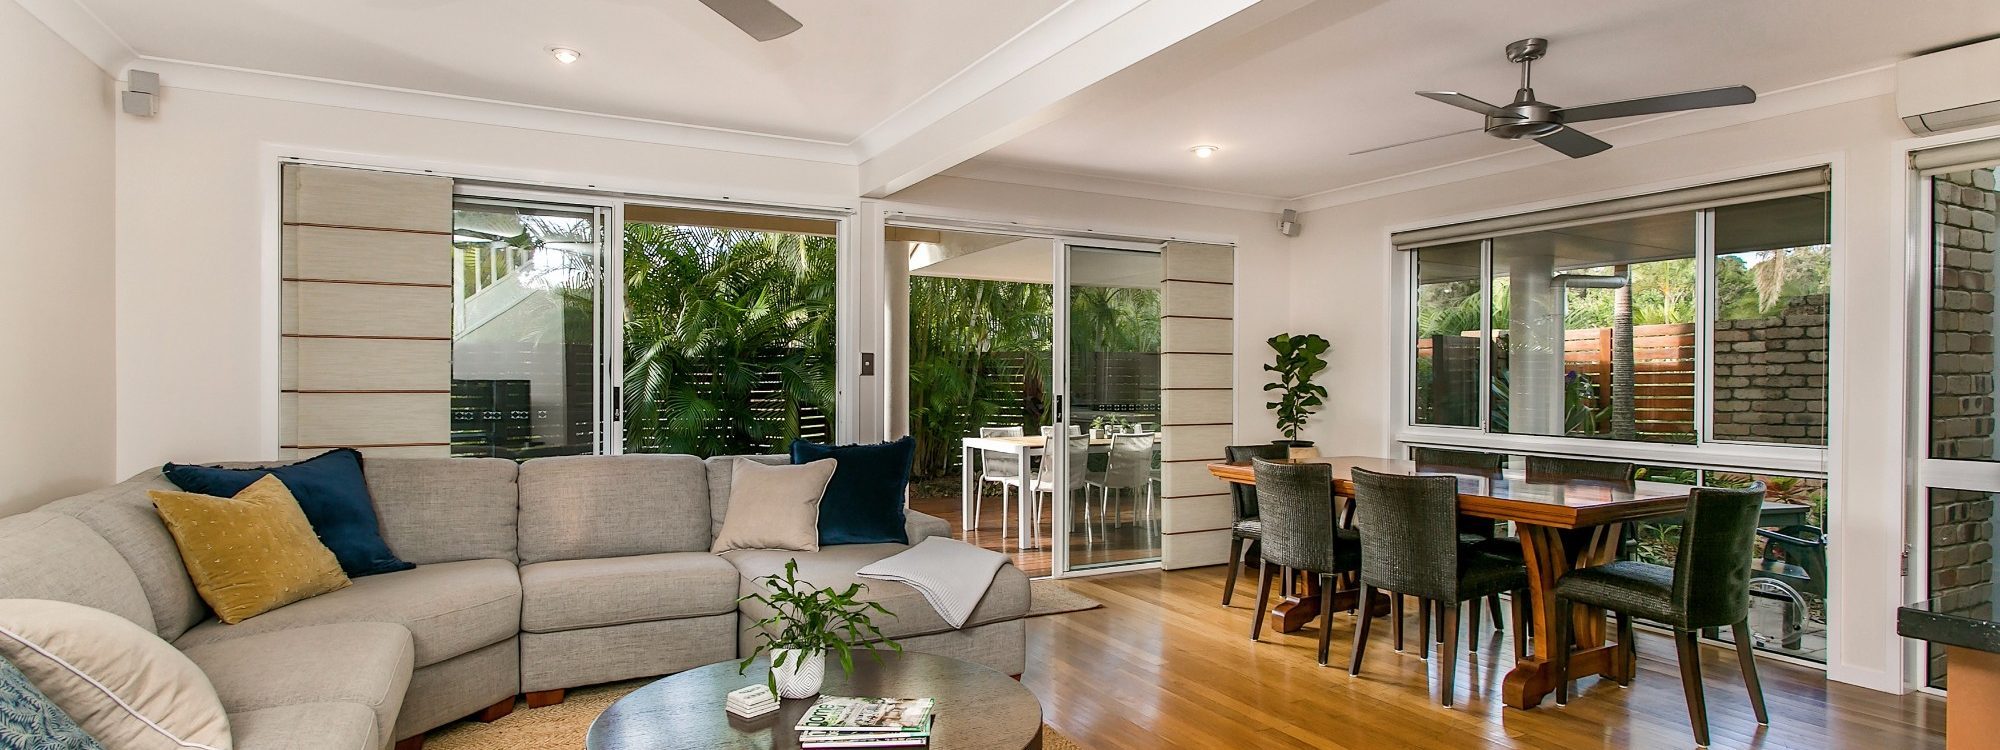 Tradewinds 4 - Clarkes - Living and Dining